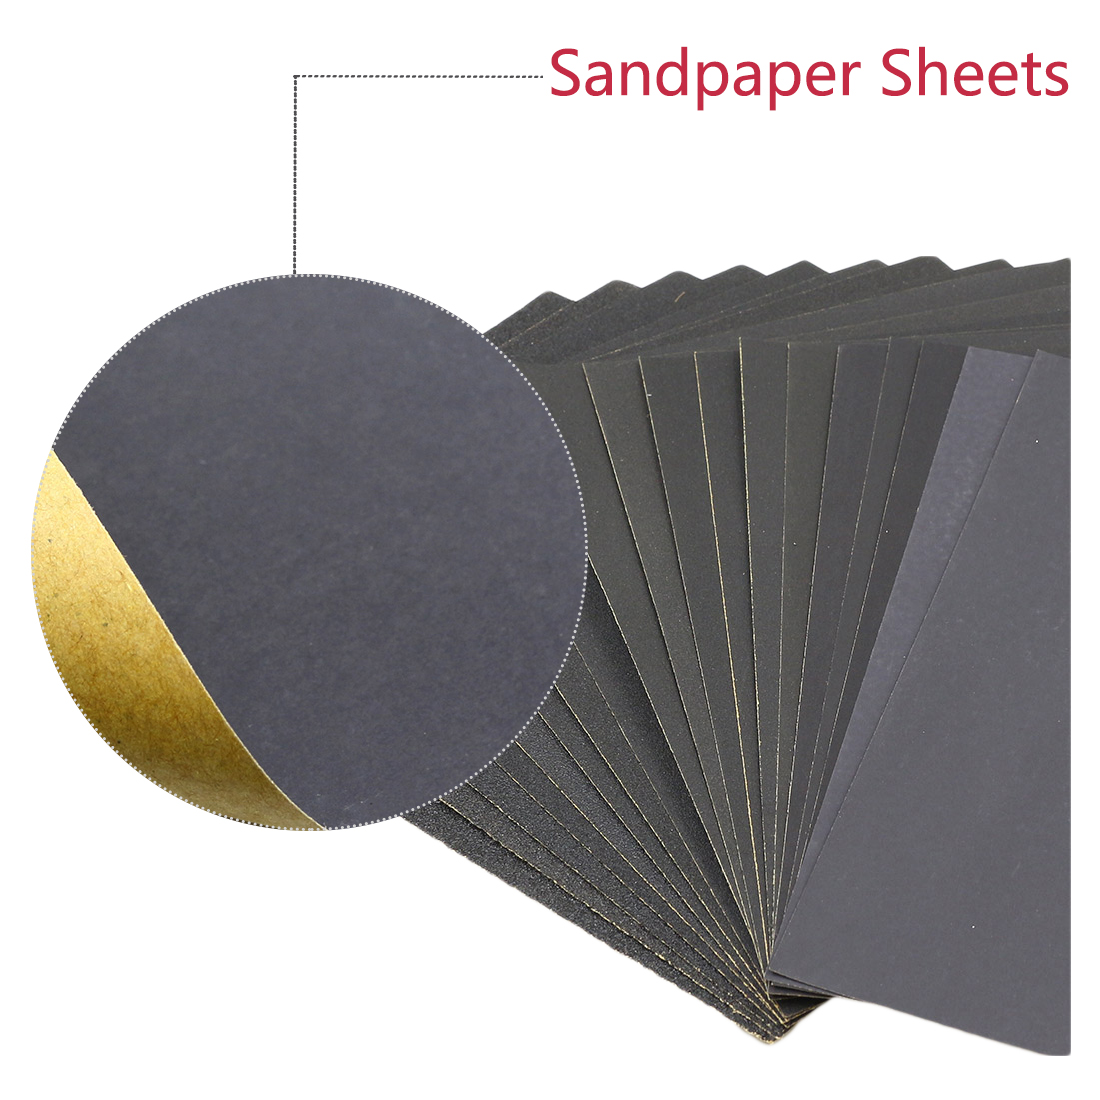 NEW Grit 3000 5000 7000 Wet And Dry Sandpaper Polishing Abrasive Waterproof Paper Sheets 230*280mm